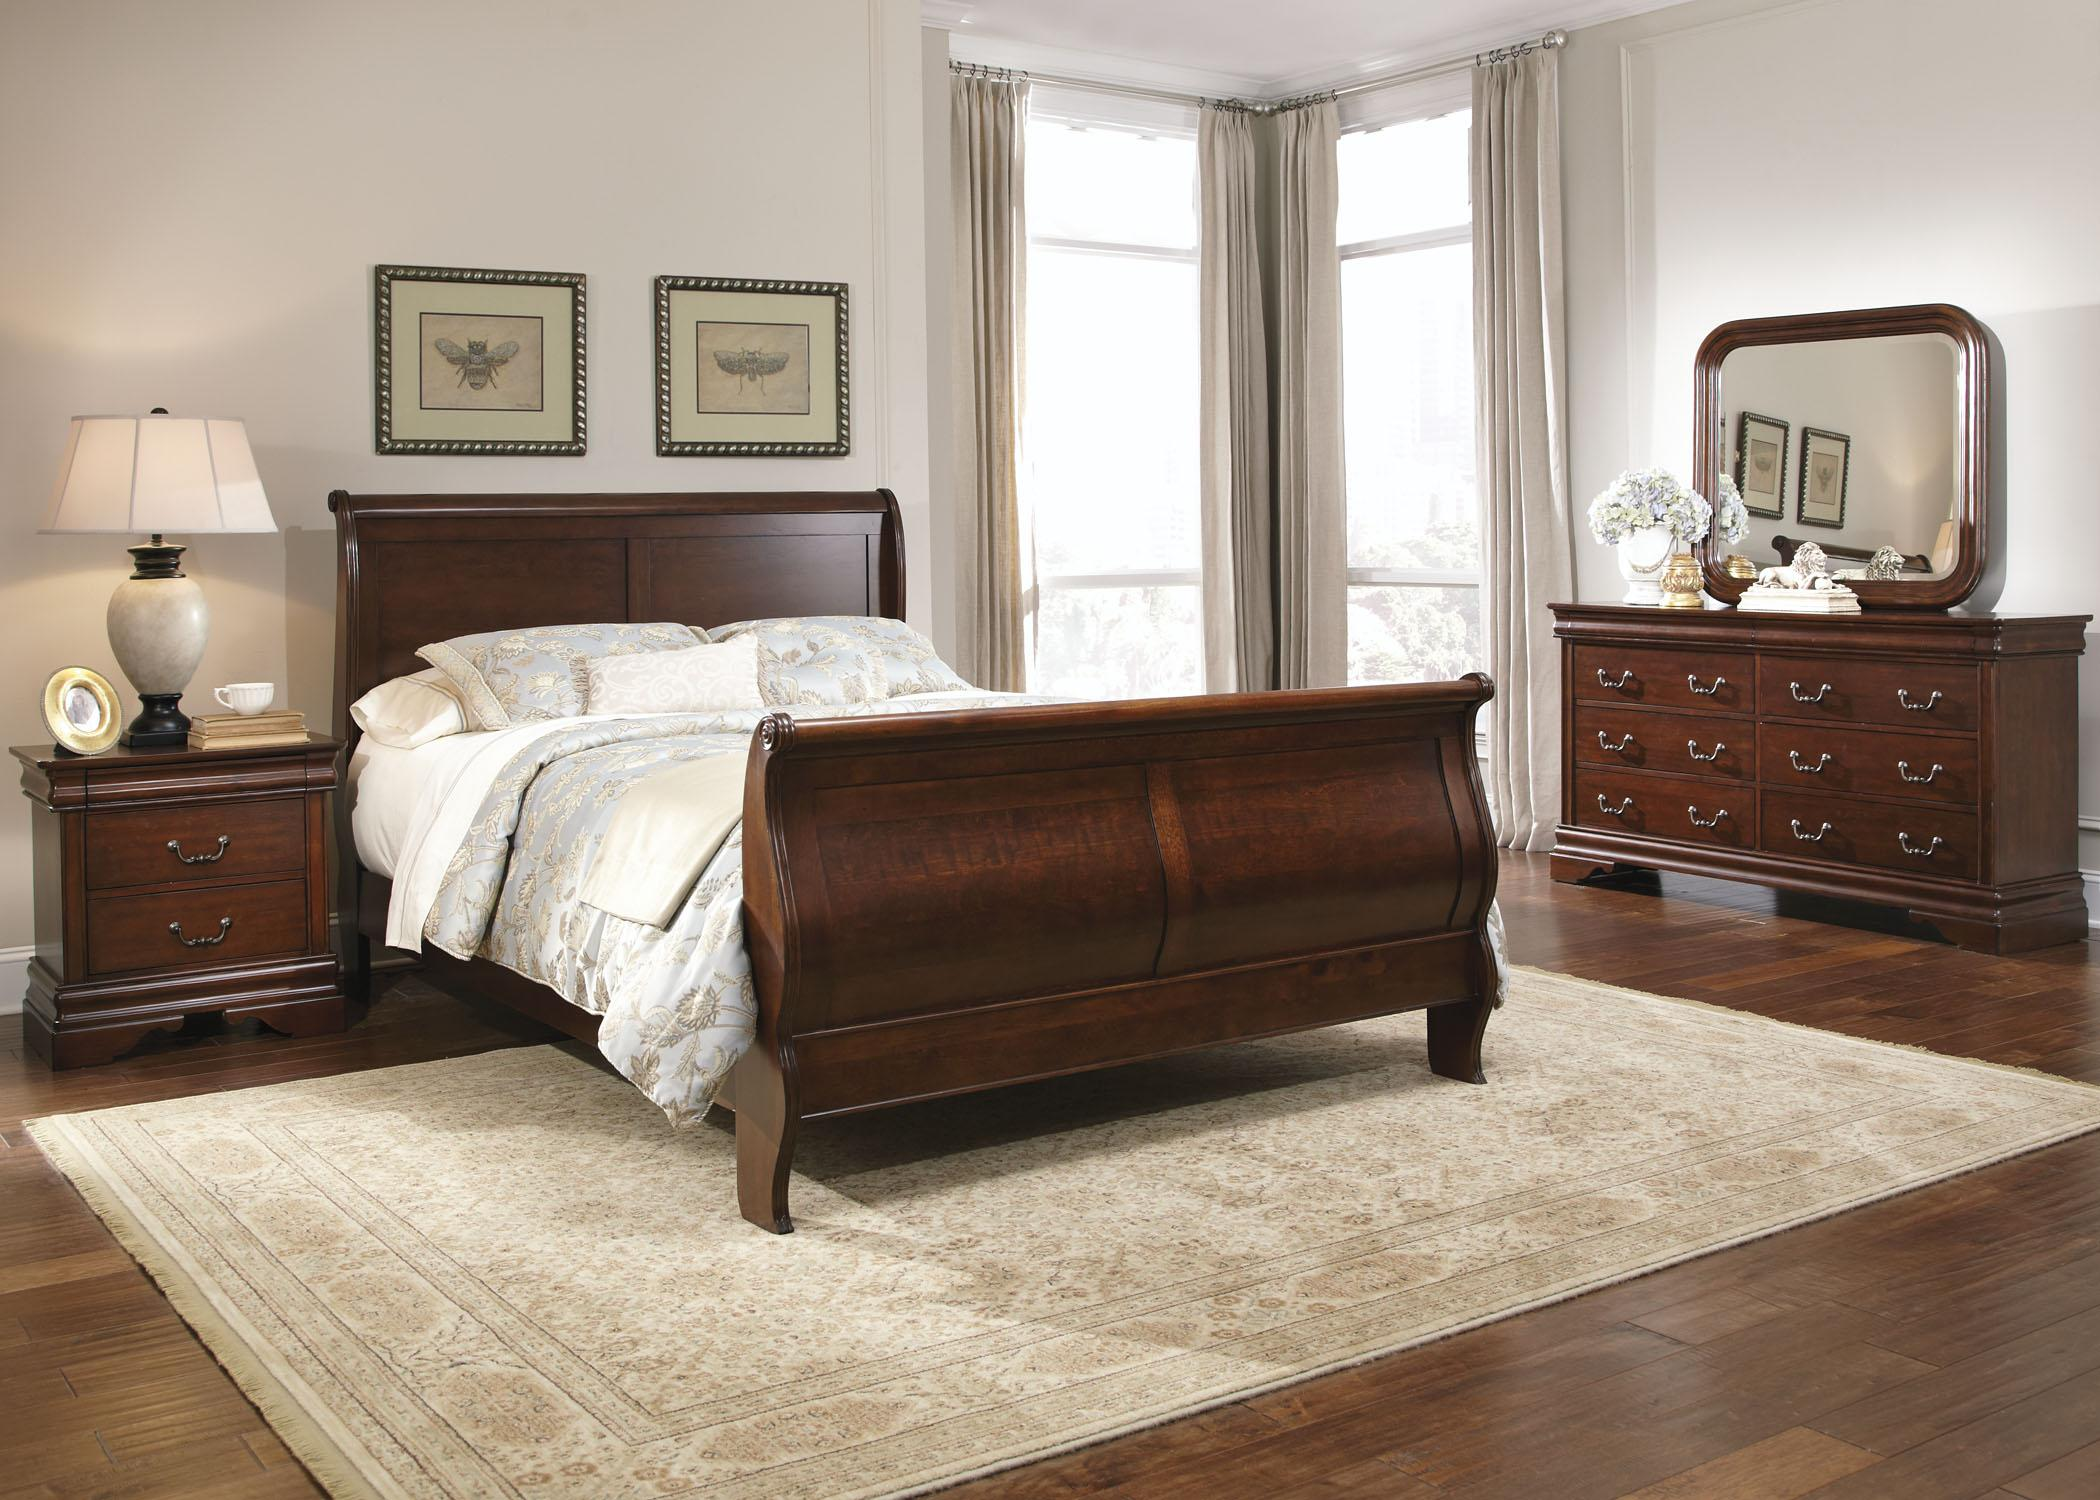 Liberty Furniture Carriage Court Queen Sleigh Bed, Dresser & Mirror, N/S - Item Number: 709-BR-GP33